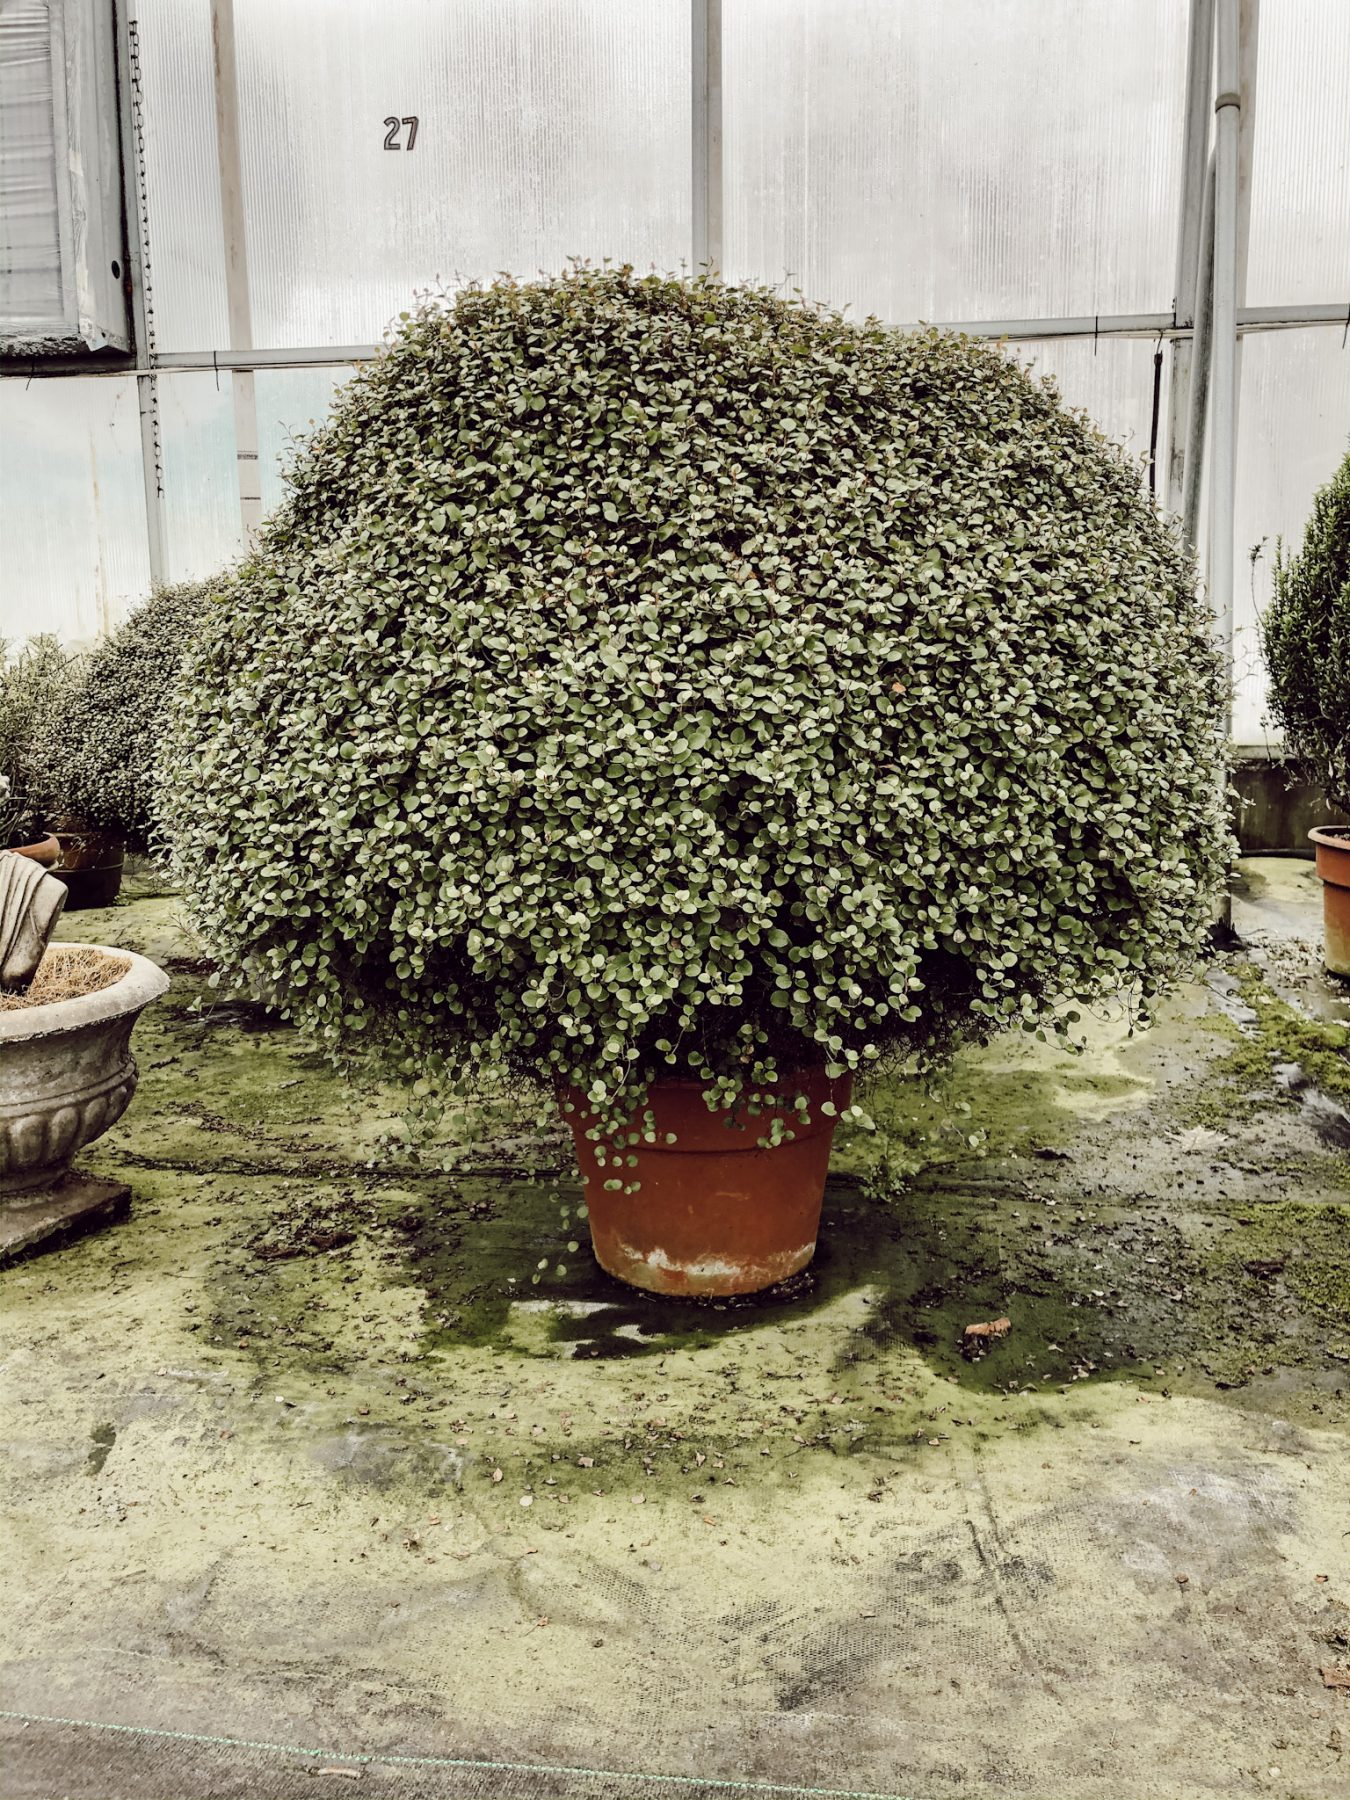 Oversized green potted plant